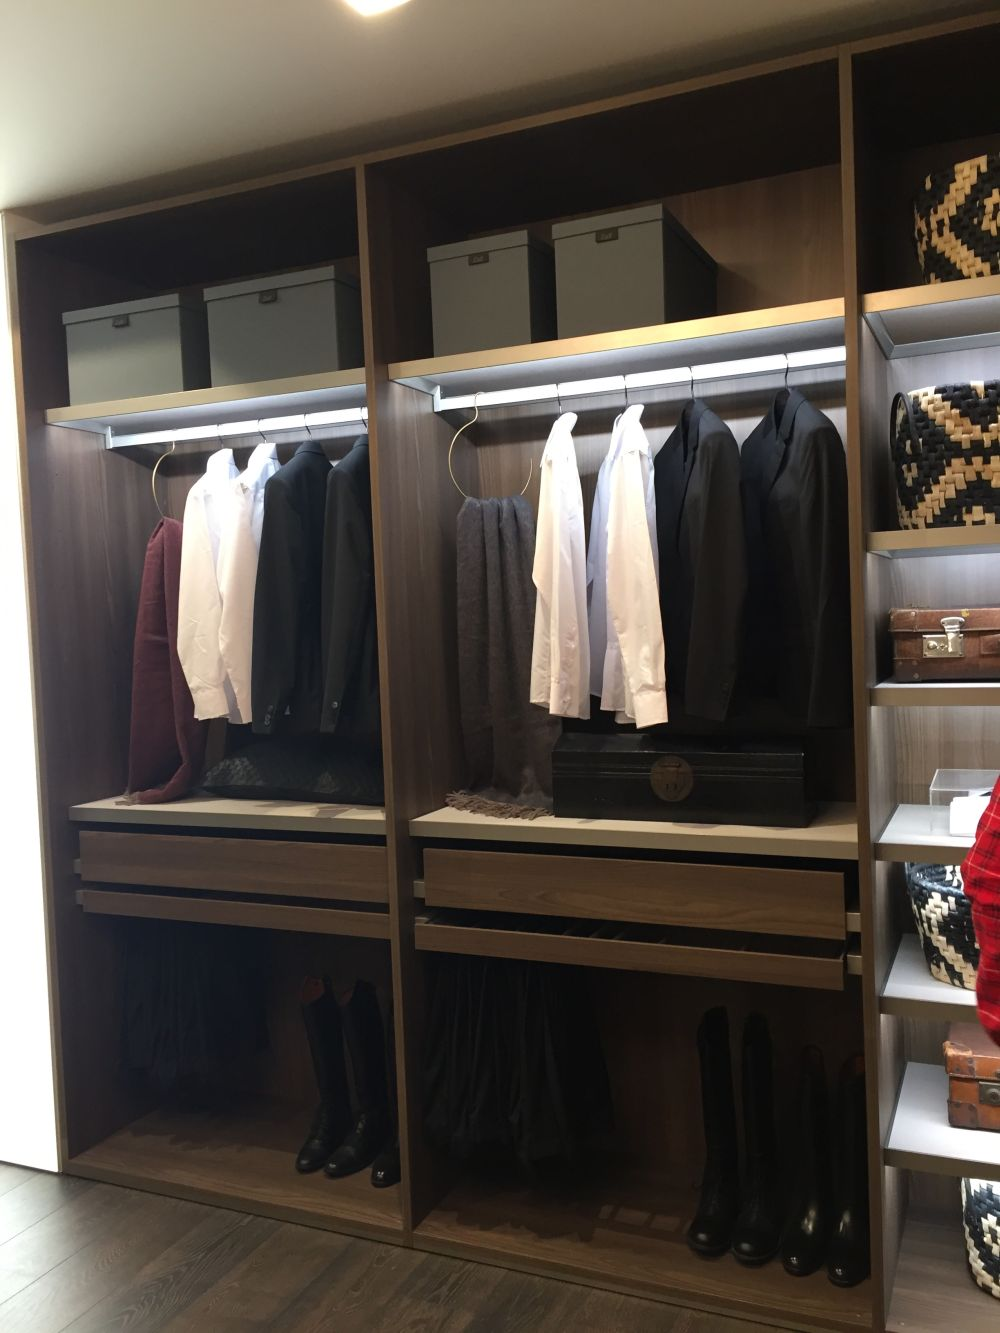 Closet Systems for a better Organization